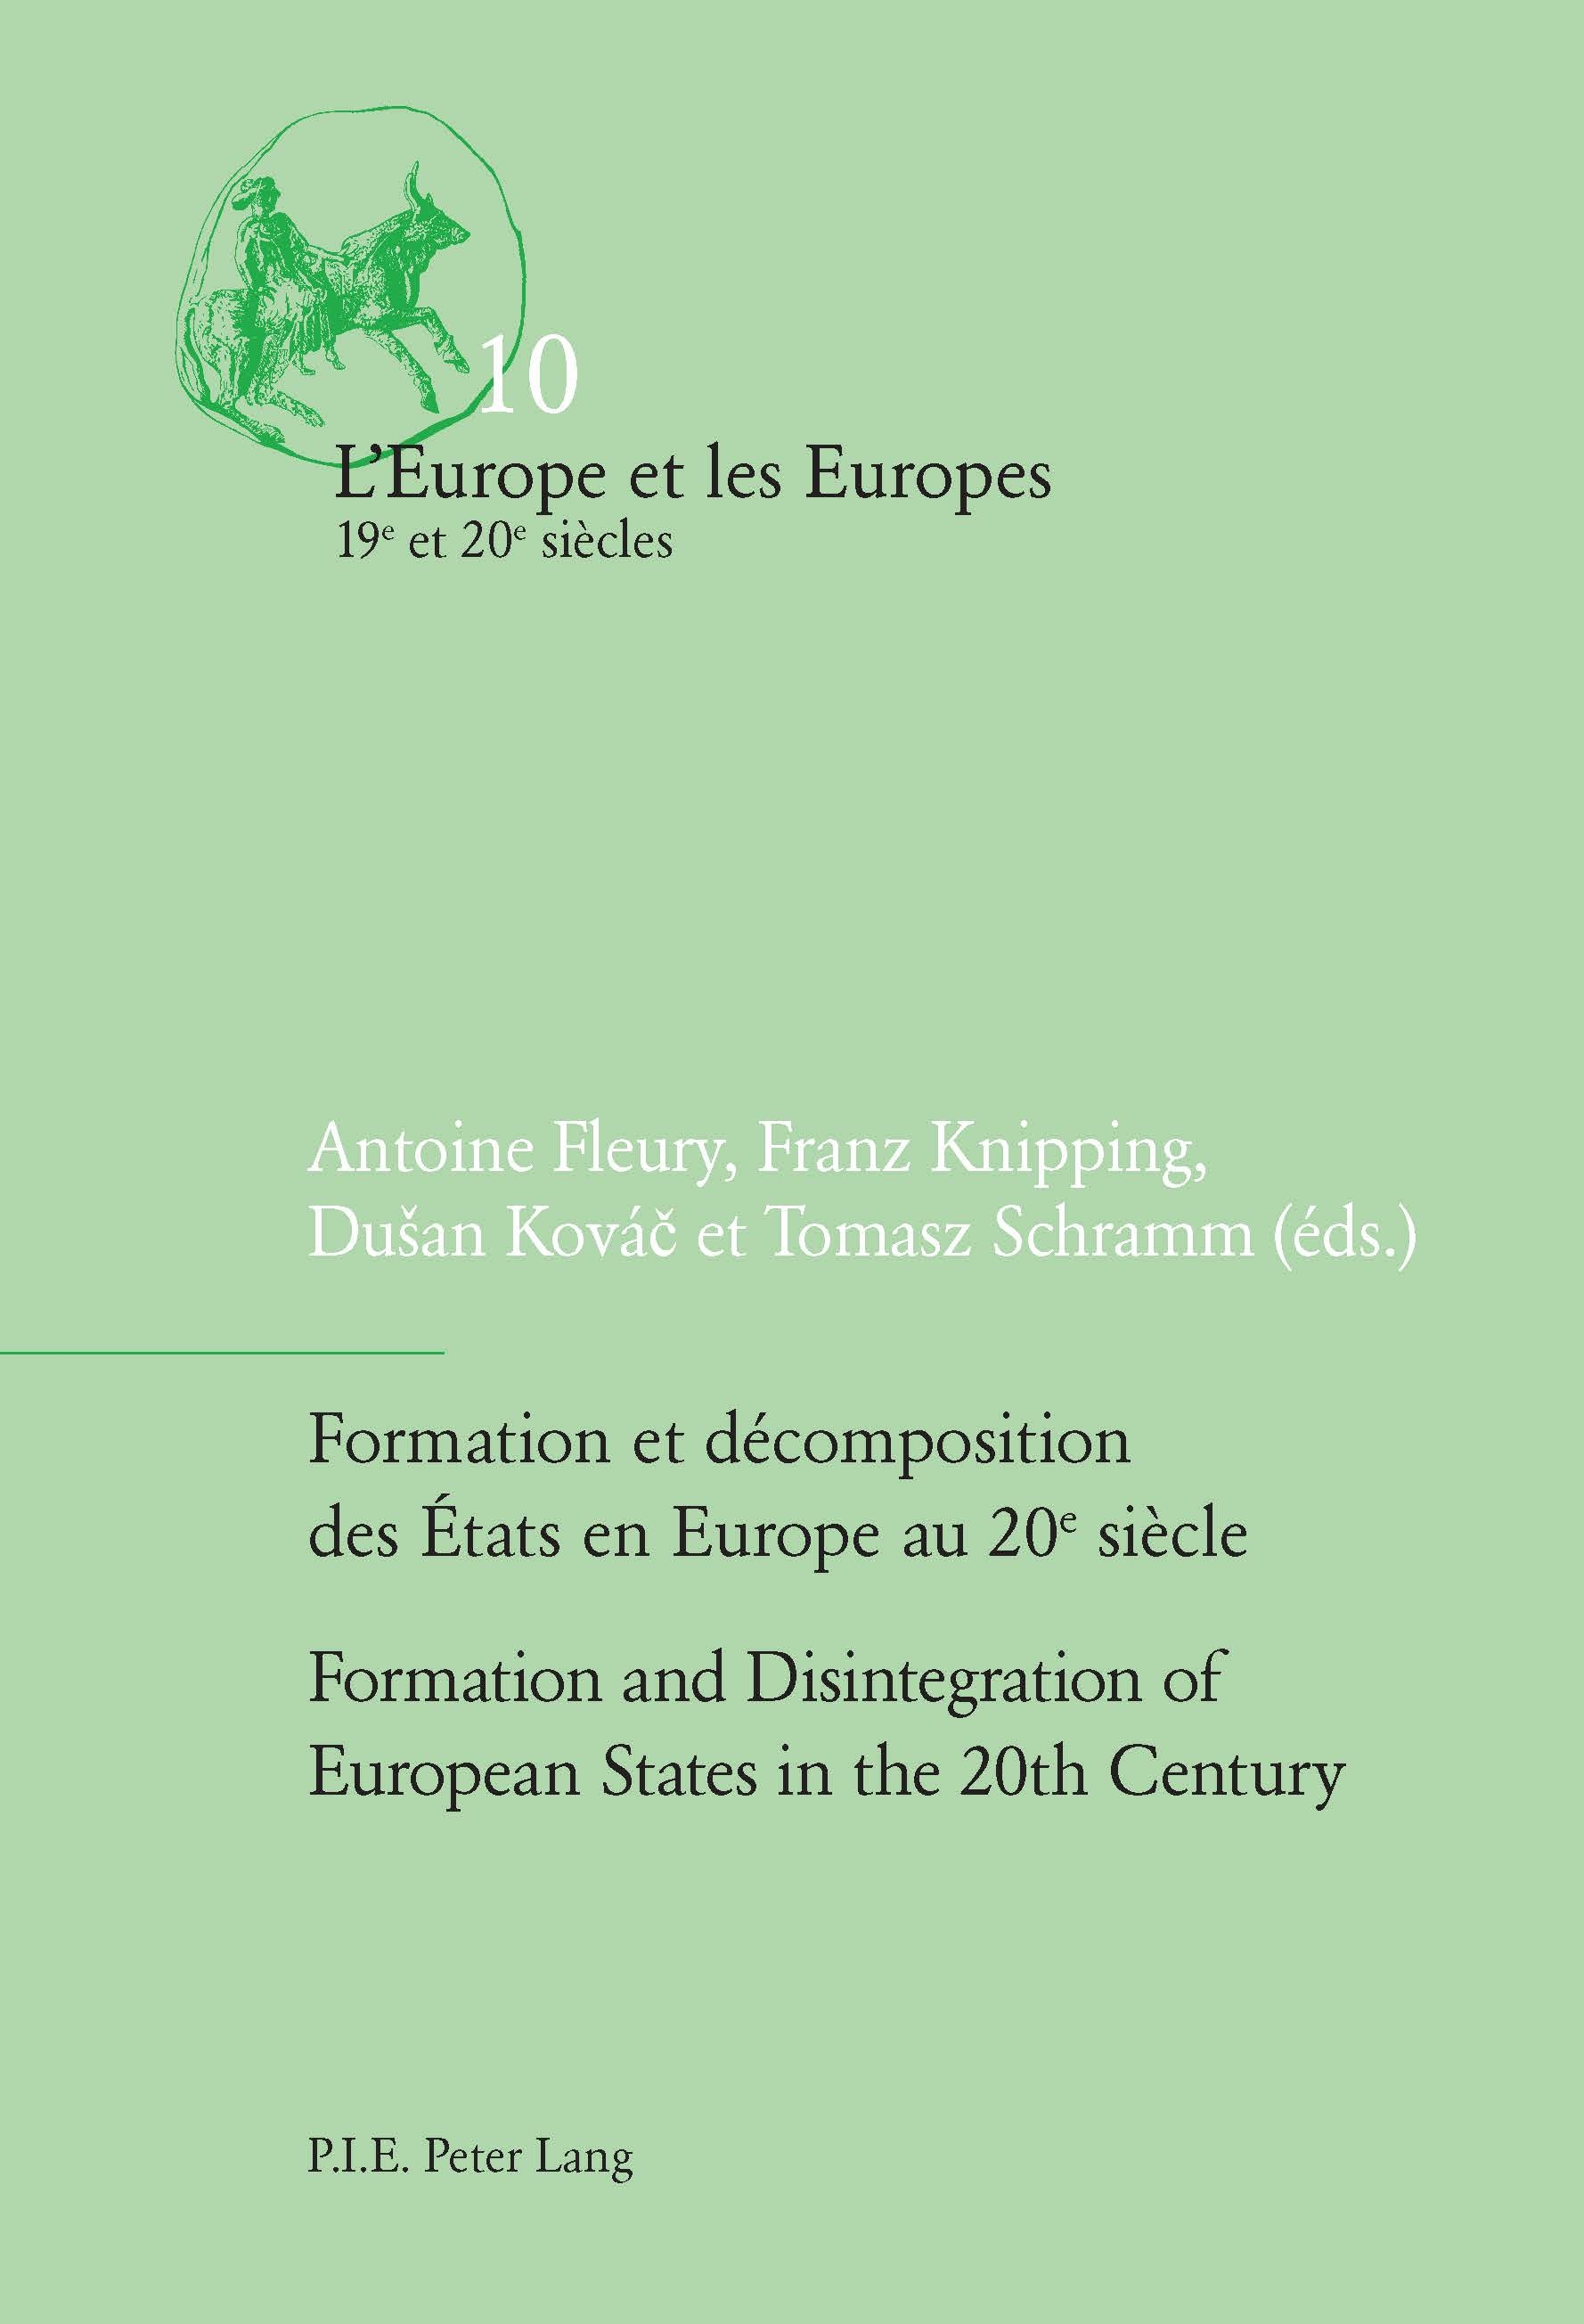 FORMATION ET DECOMPOSITION DES ETATS EN EUROPE AU XXE SIECLE/THE FORMATION AND DISINTEGRATION OF EUR